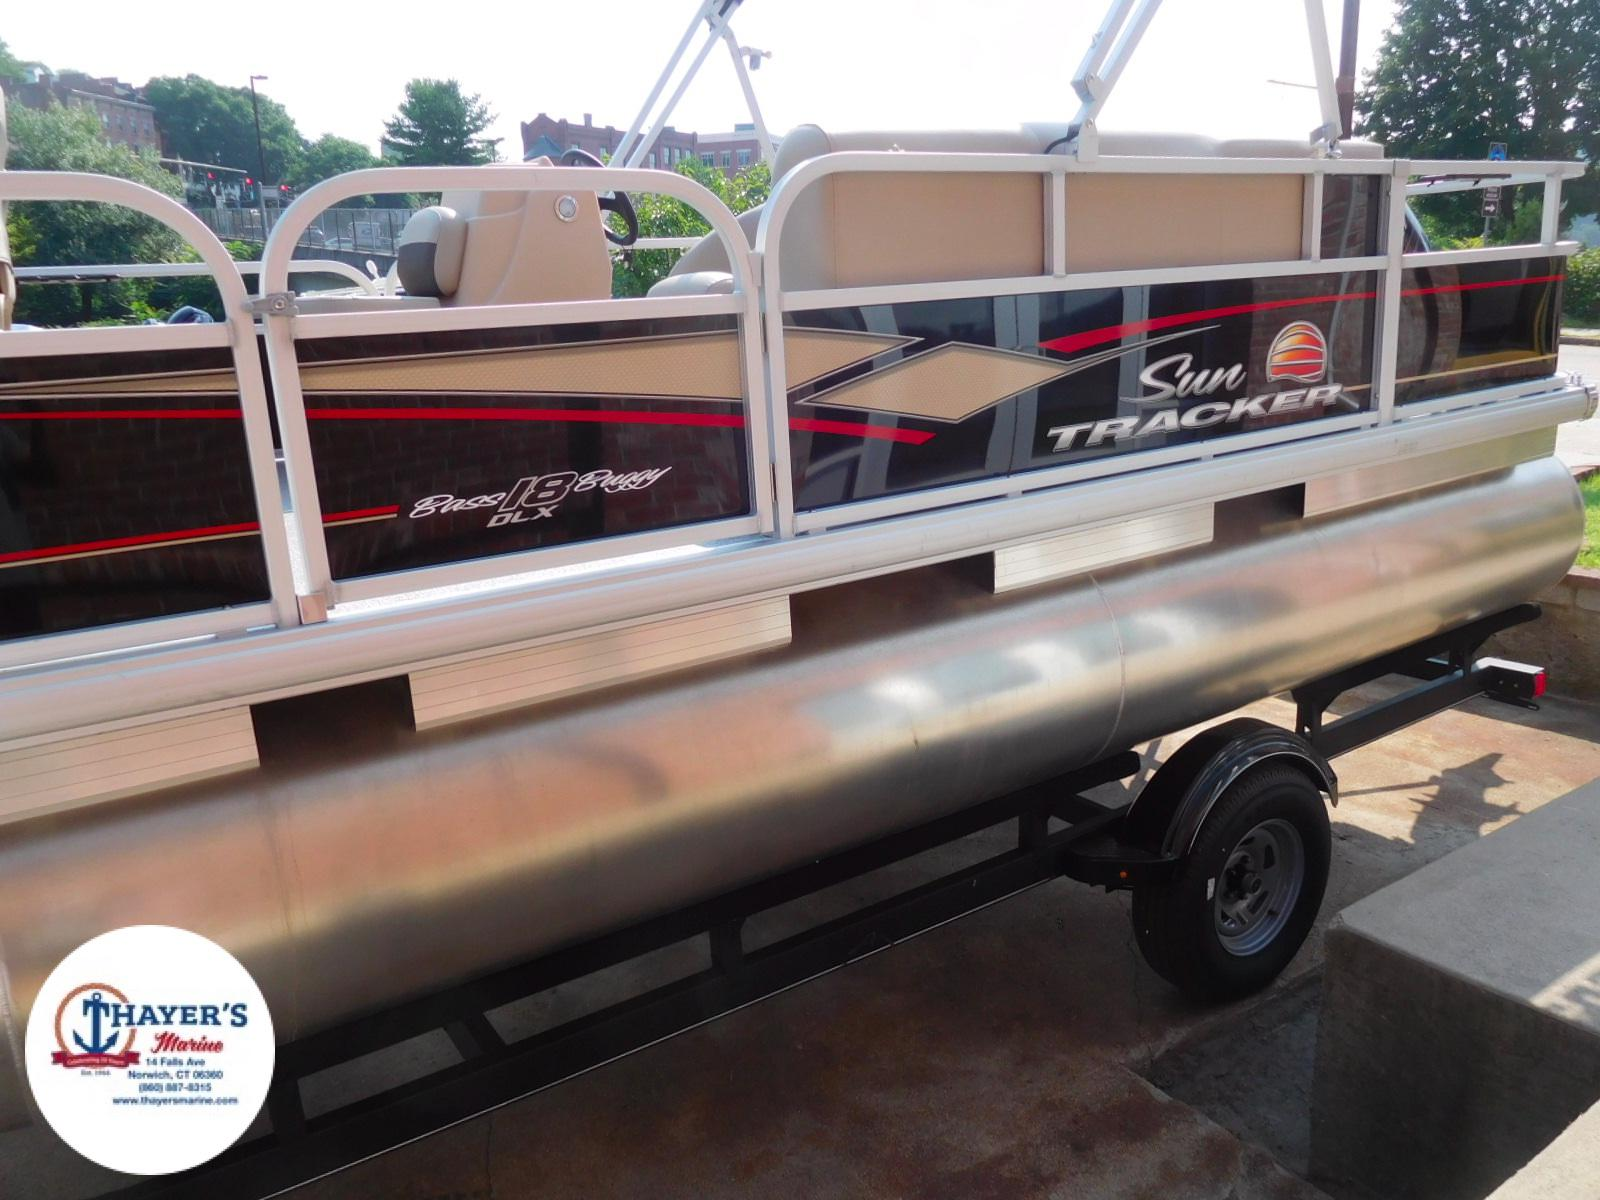 2018 Sun Tracker boat for sale, model of the boat is Bass Buggy 18 DLX & Image # 34 of 35